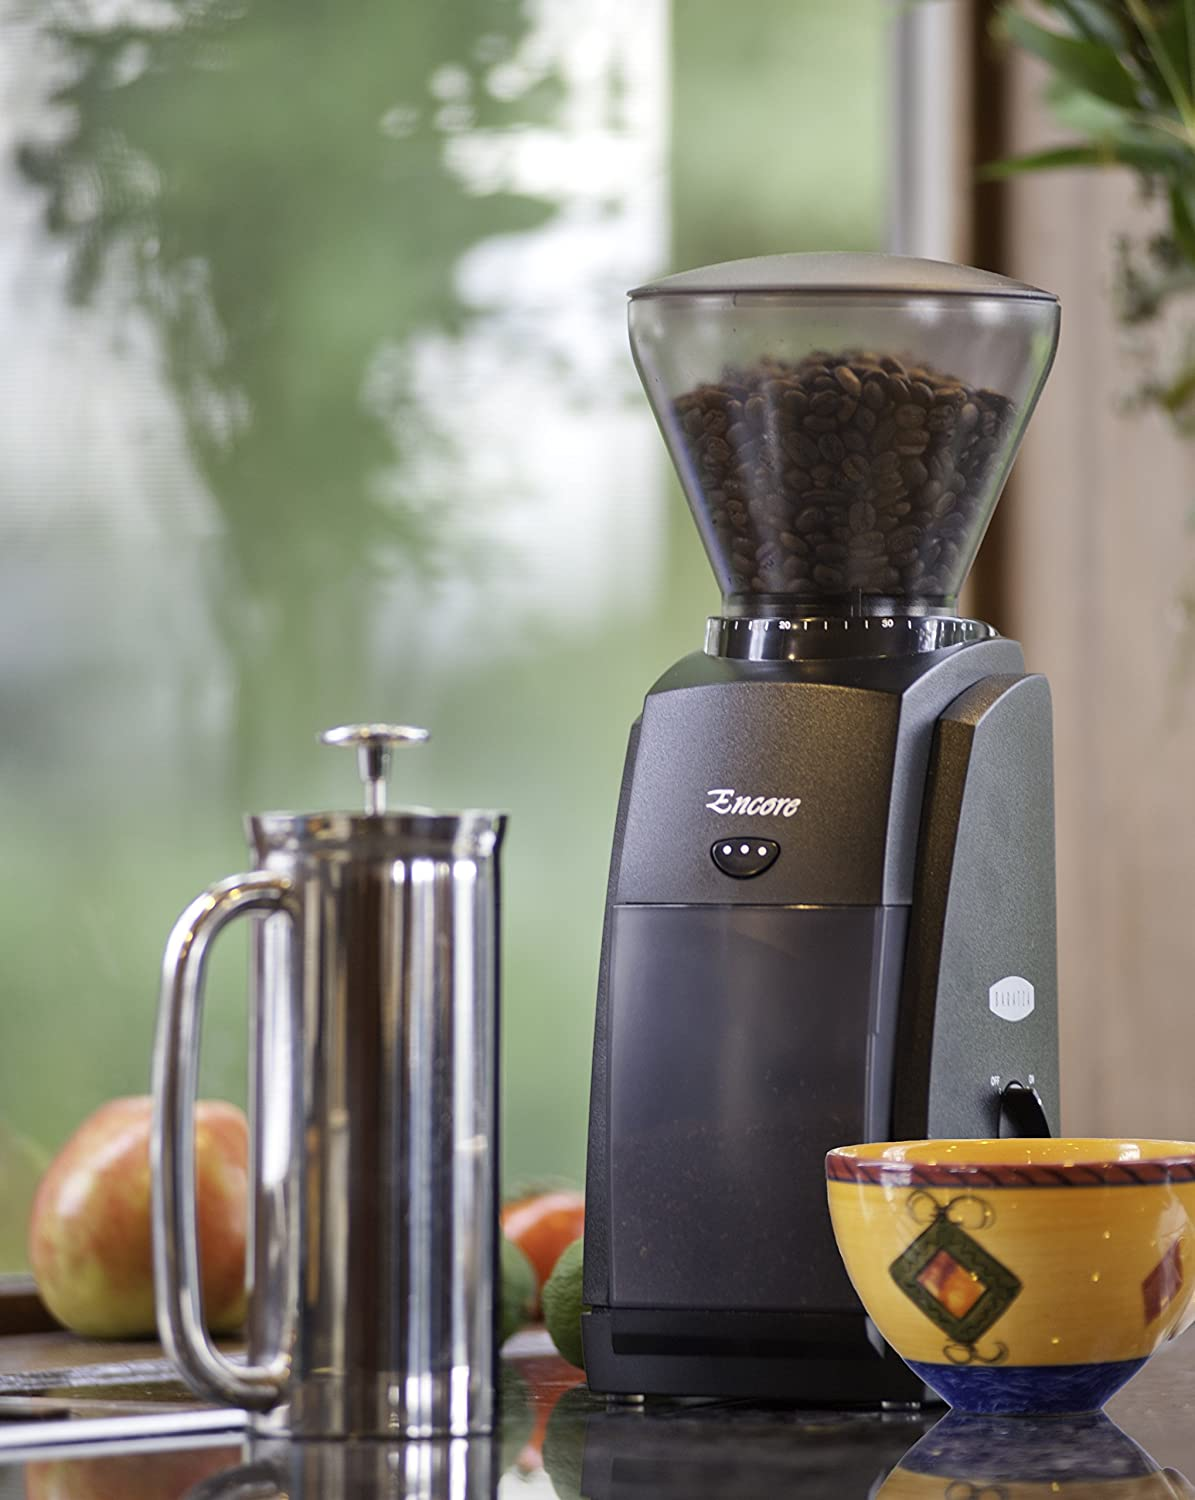 The Baratza Encore is a conical burr grinder and performs brilliantly.